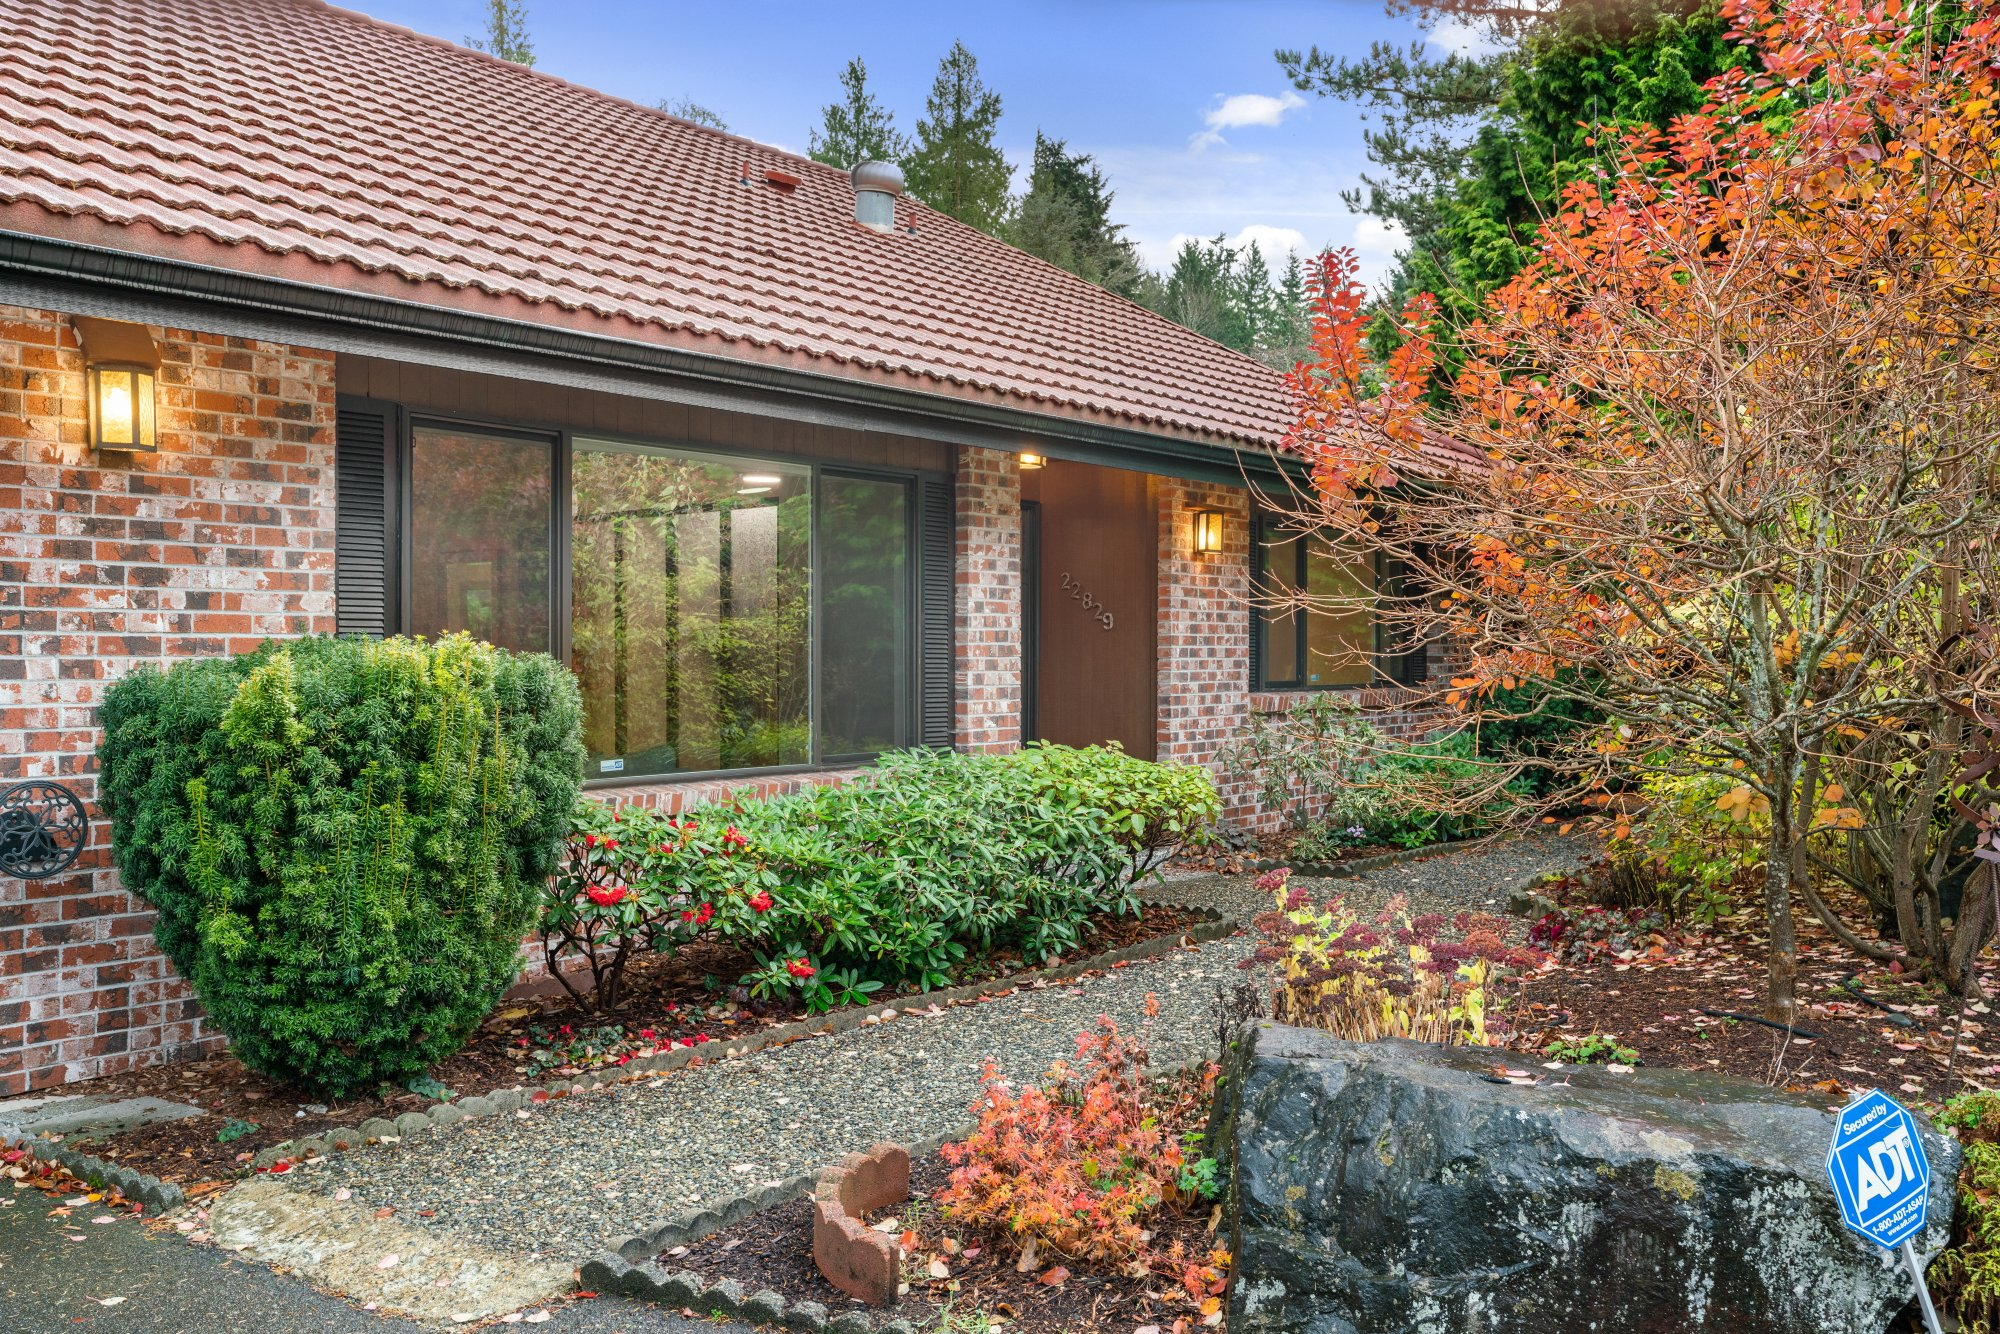 Terry Vehrs_002-22829108thAvenueWest-Edmonds-WA-98020-SMALL